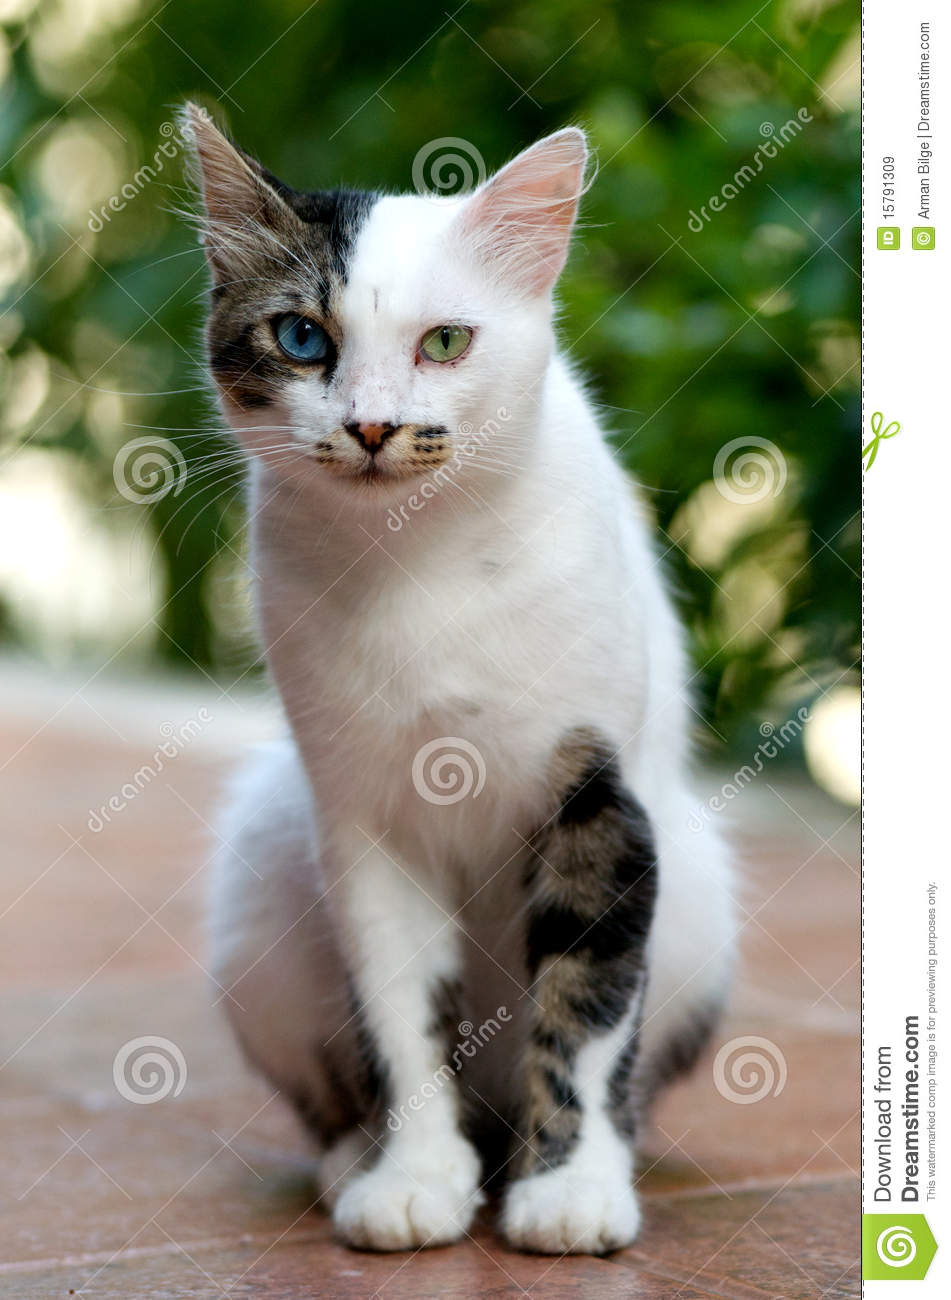 edd80023f0 Turkish Van Cat stock image. Image of head